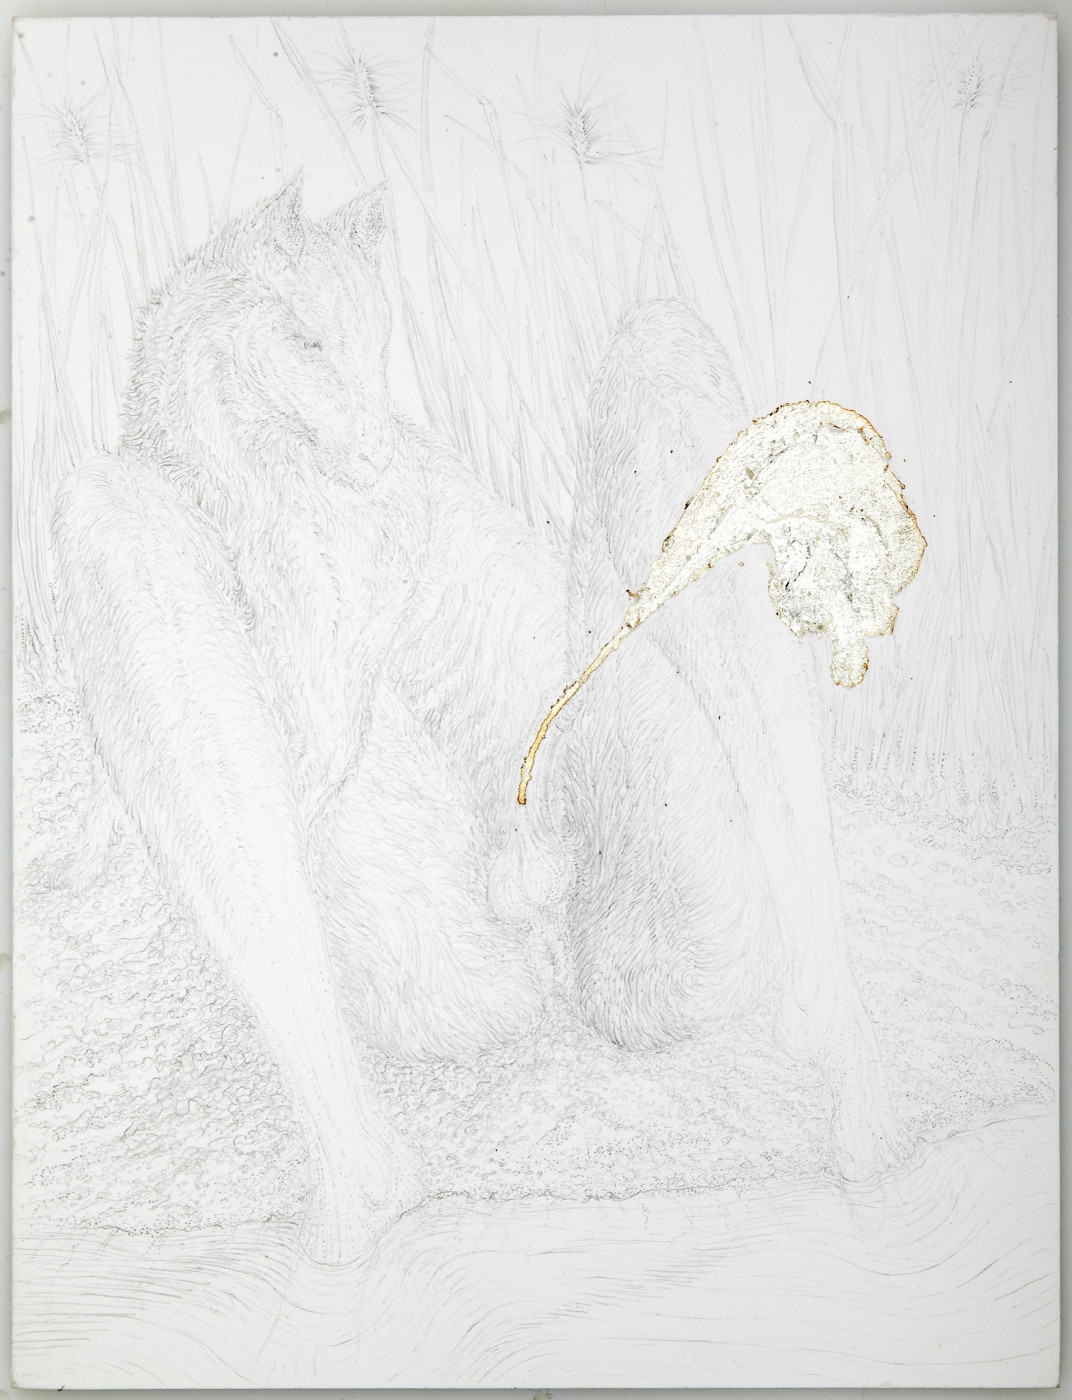 """<div class=""""artwork_caption""""><p>KHU: The Seed of Set is Dense as the Milk of Silver, 2009</p></div>"""